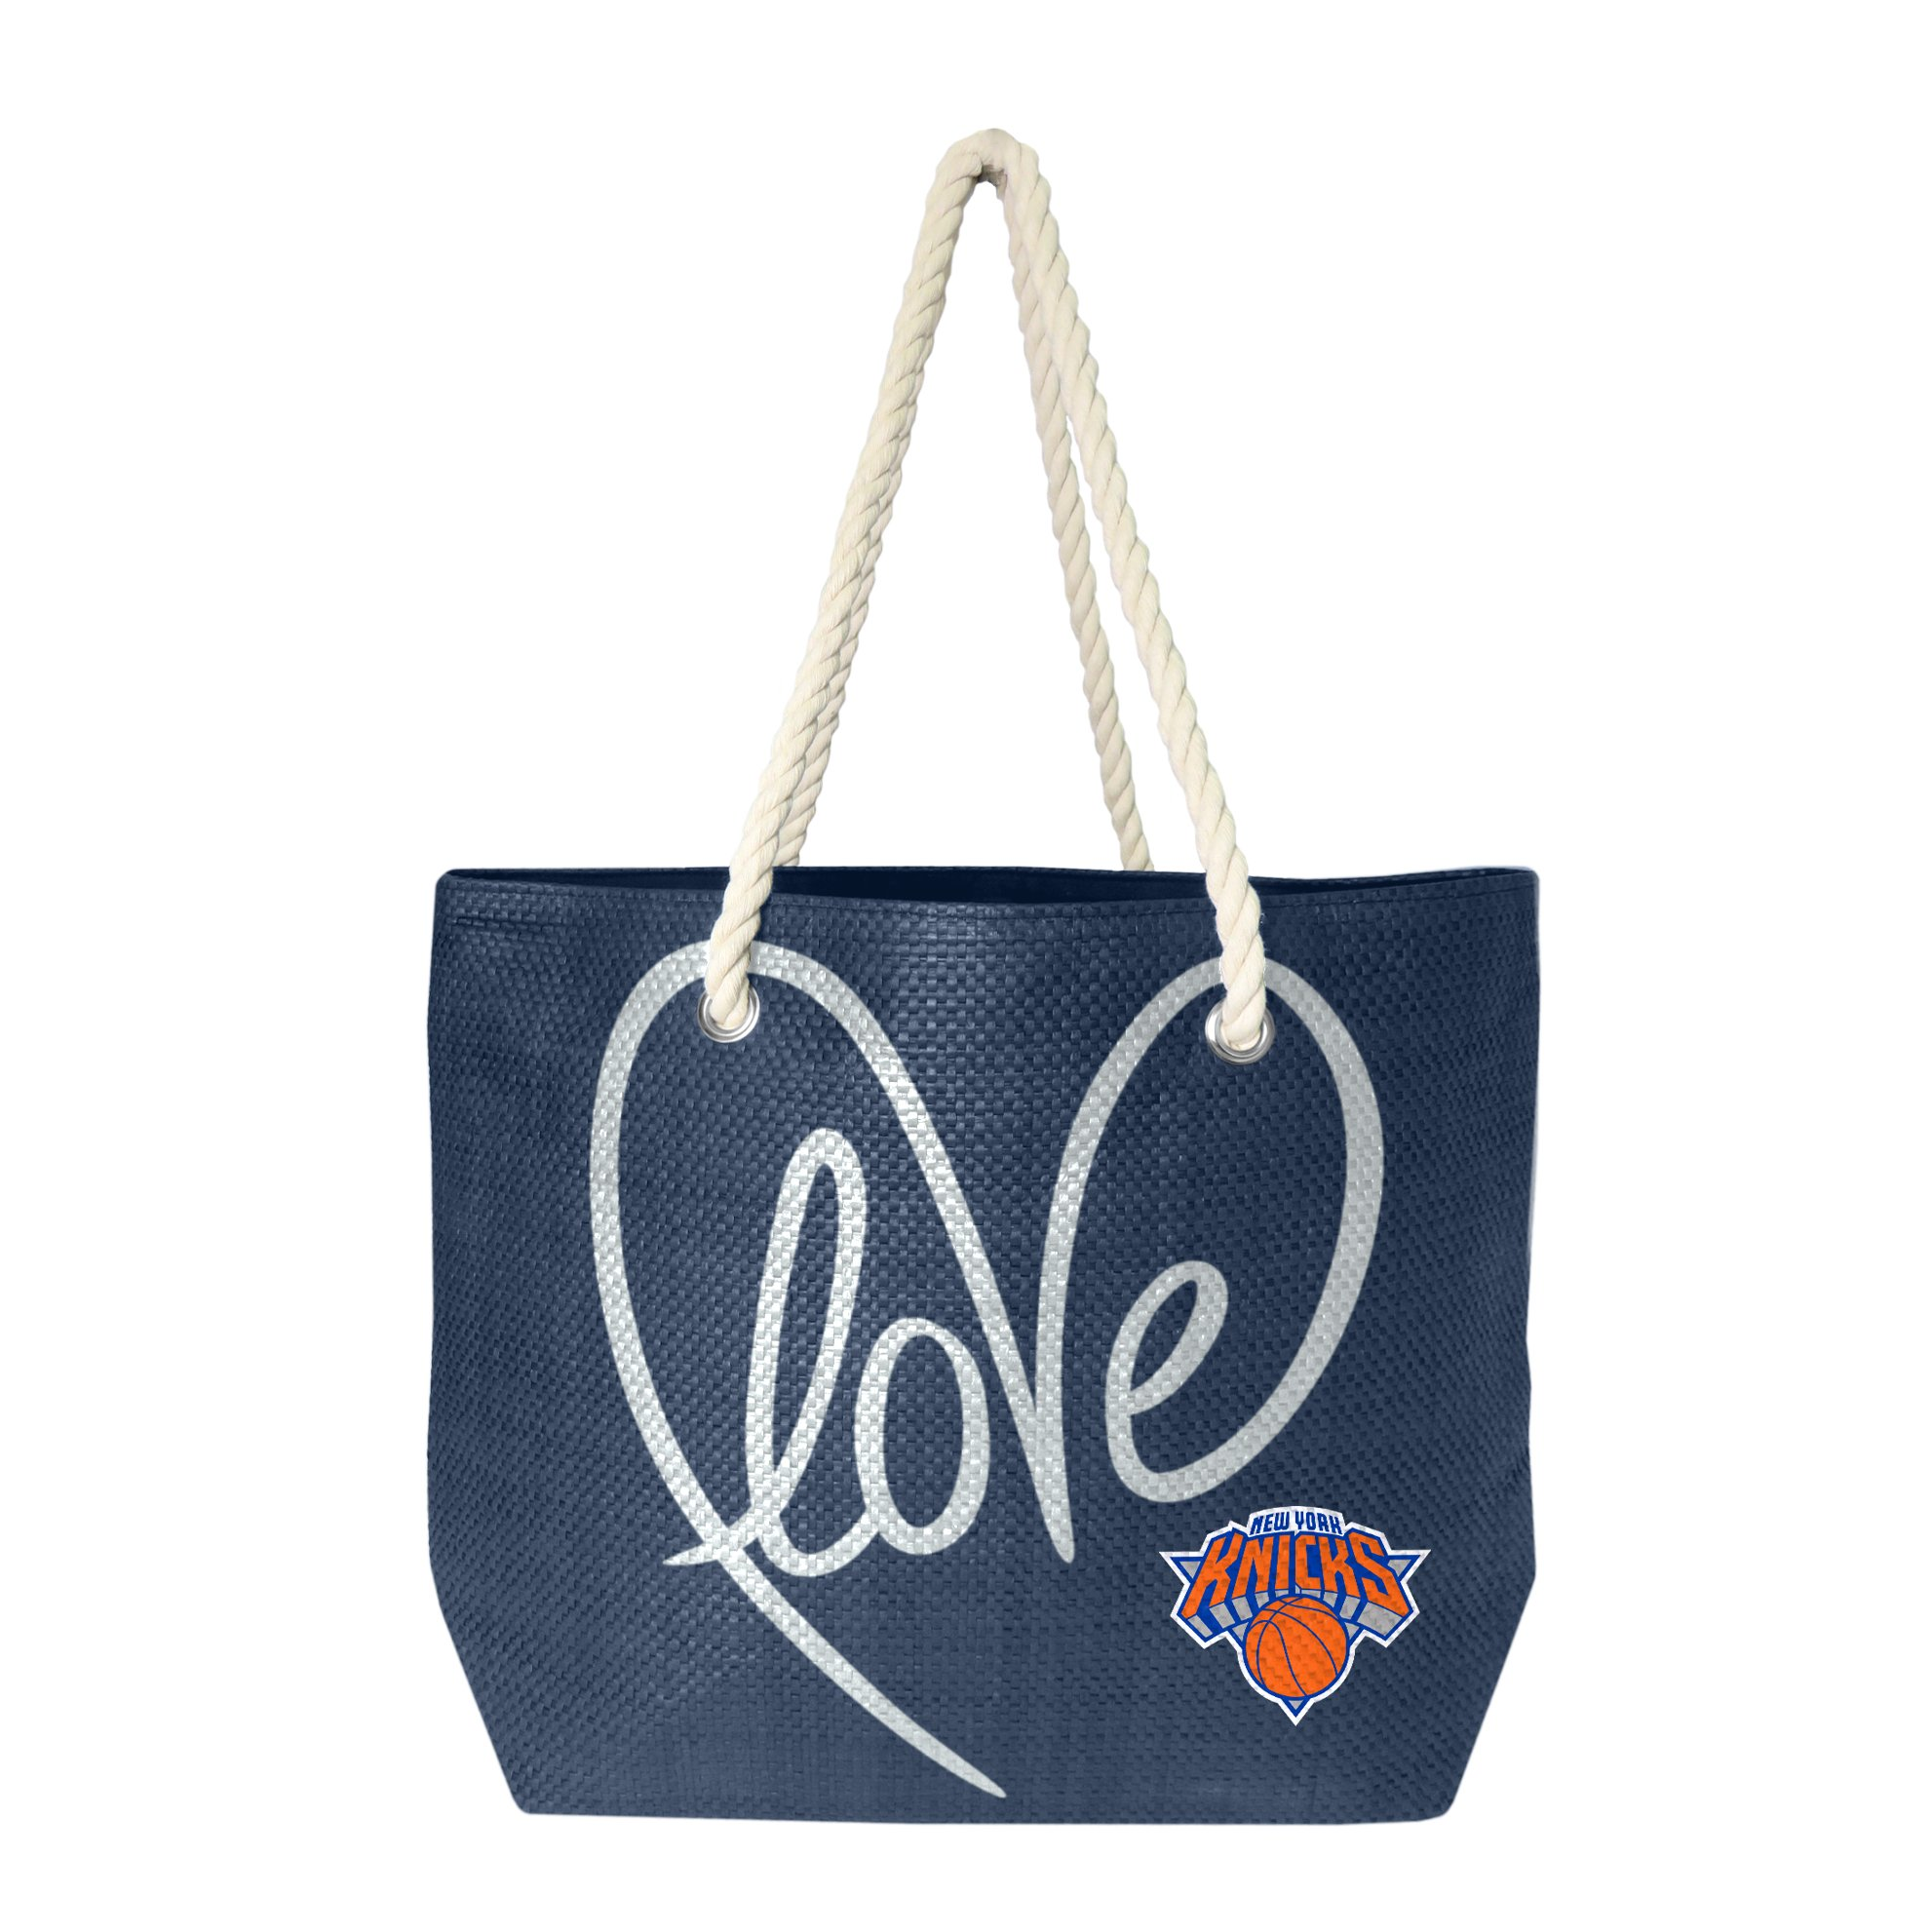 NBA New York Knicks Rope Tote Bag by Littlearth